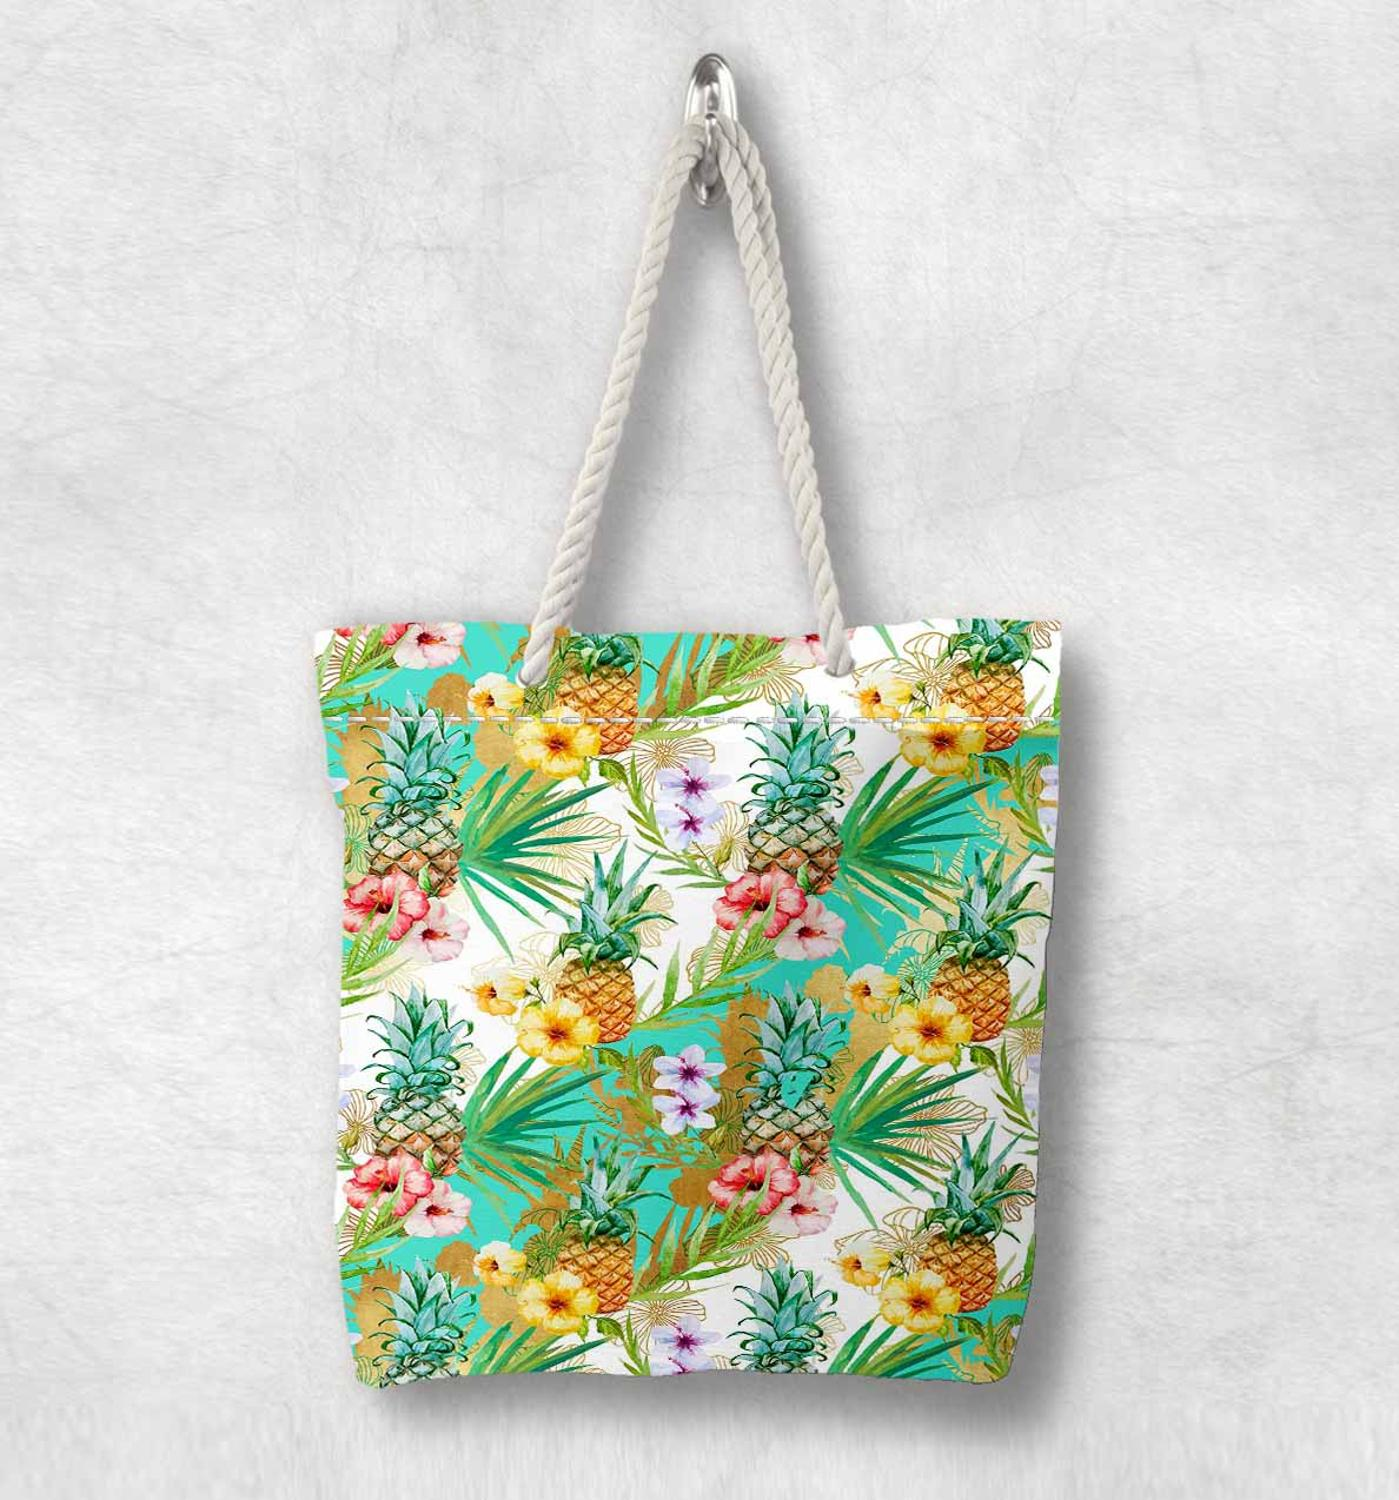 ElseTropical  Green Leaves Pineapple Fruit New Fashion White Rope Handle Canvas Bag Cotton Canvas Zippered Tote Bag Shoulder Bag